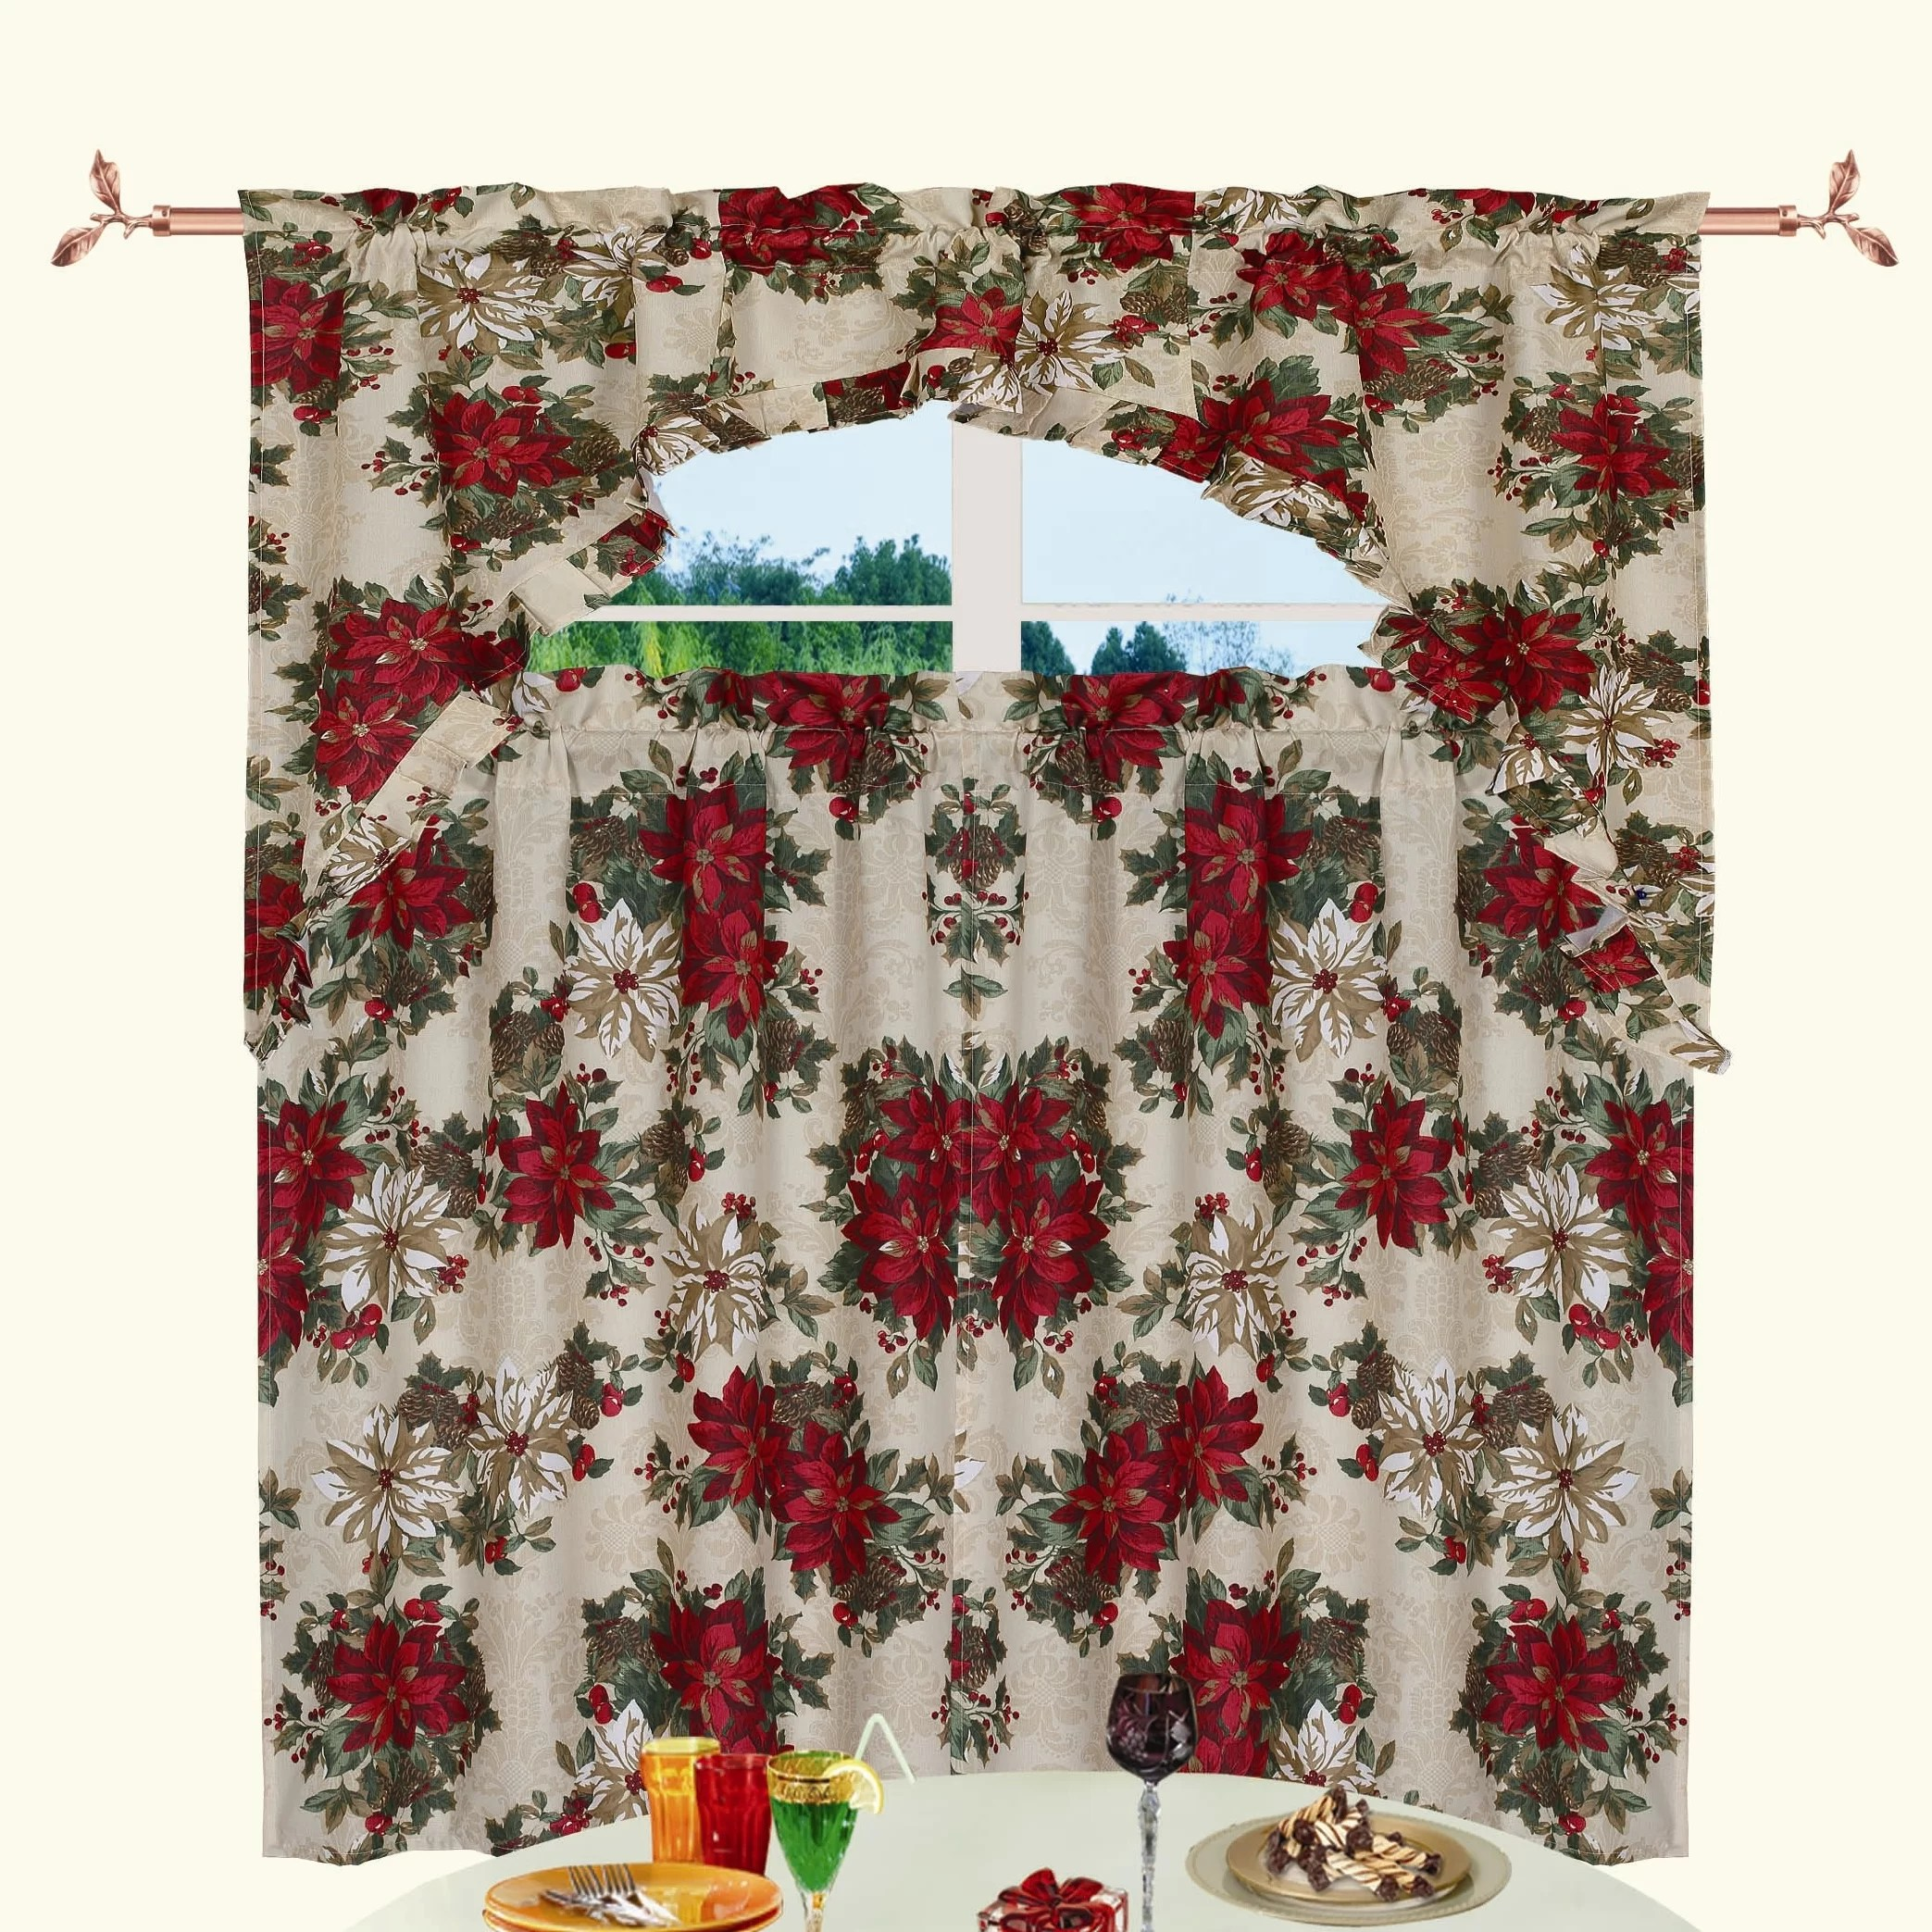 manford holiday kitchen curtain valance and tier set